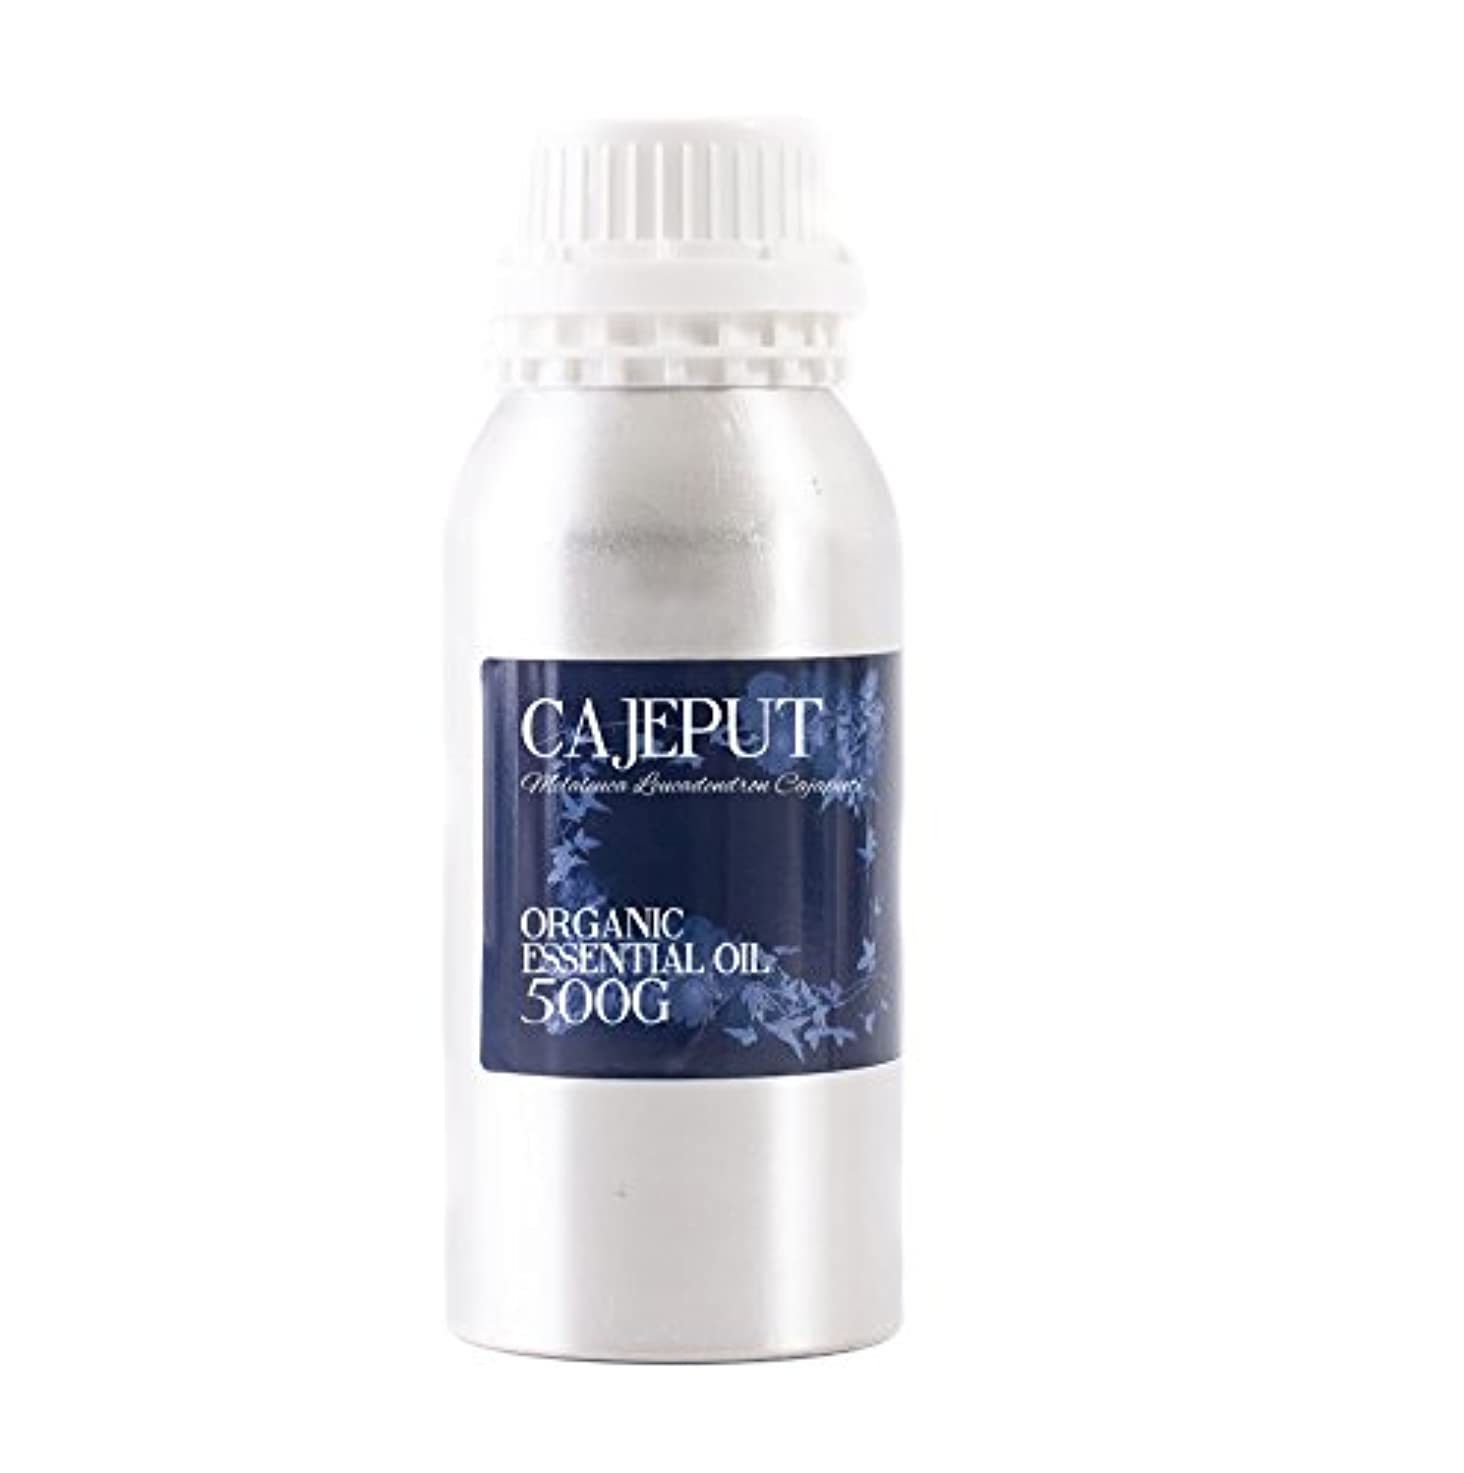 ビヨン遠足ライラックMystic Moments | Cajeput Organic Essential Oil - 500g - 100% Pure